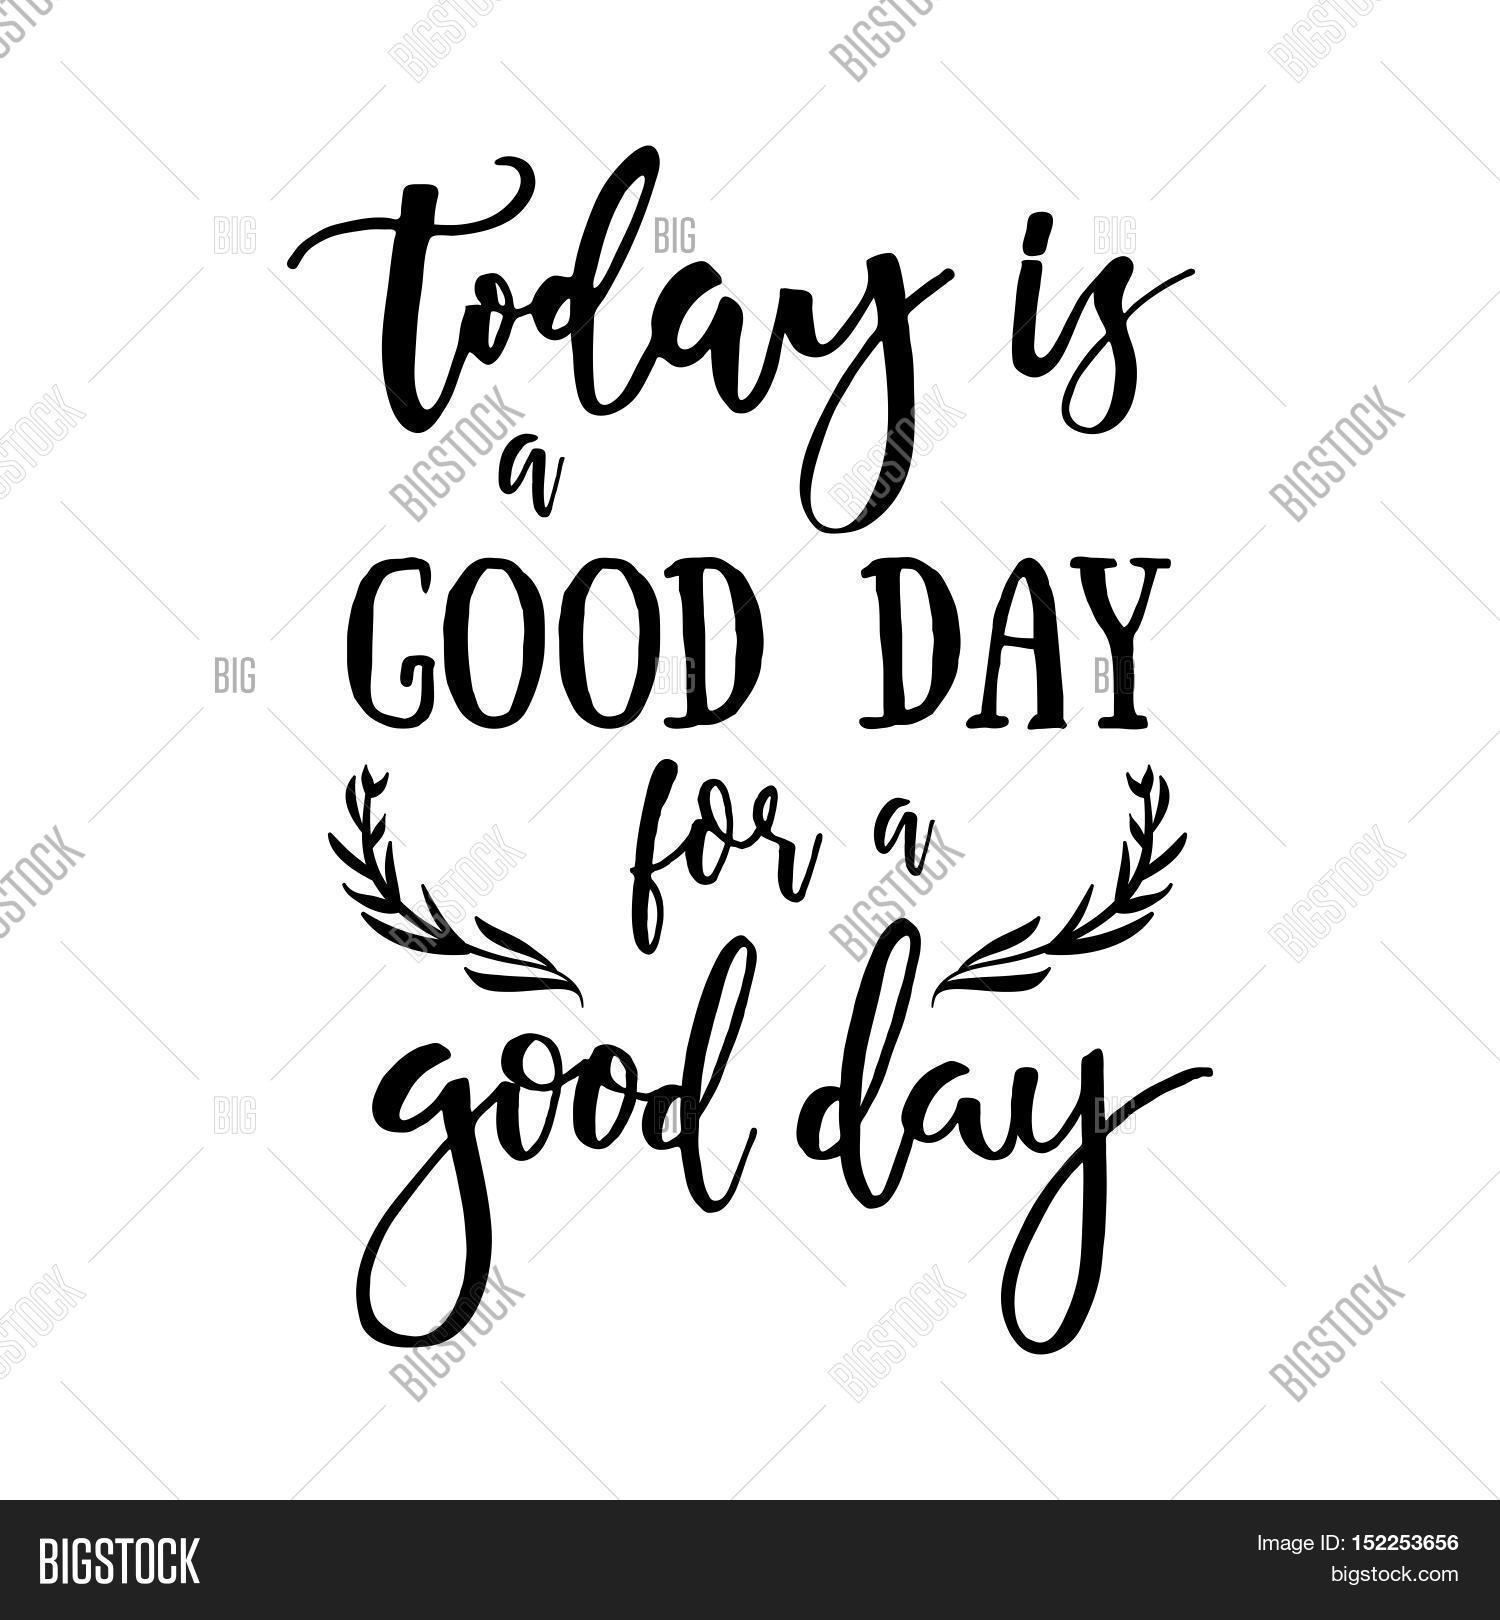 Today Good Day Good Vector Photo Free Trial Bigstock